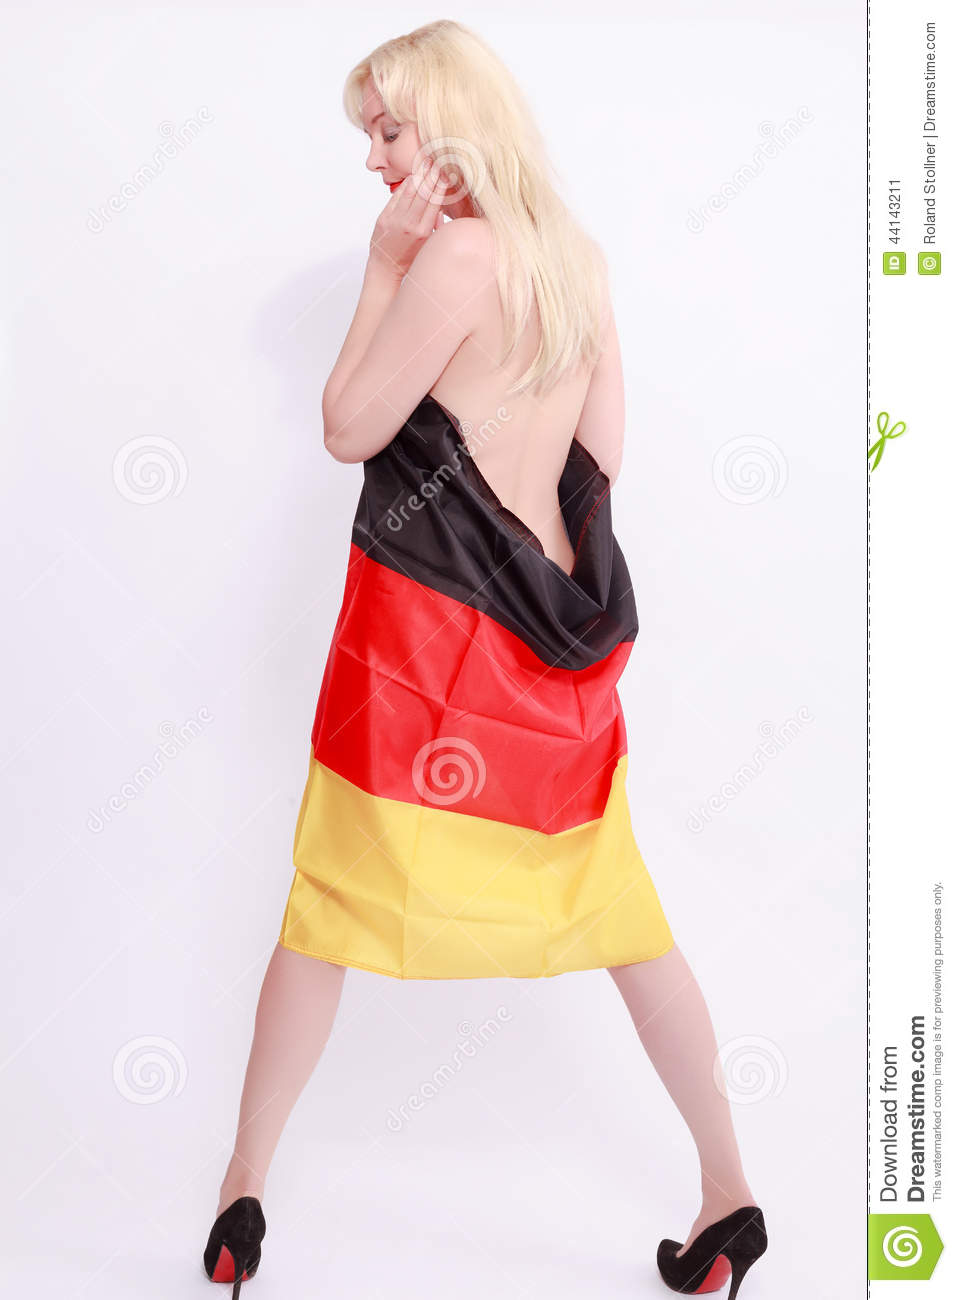 German Naked Women Pictures Download 25